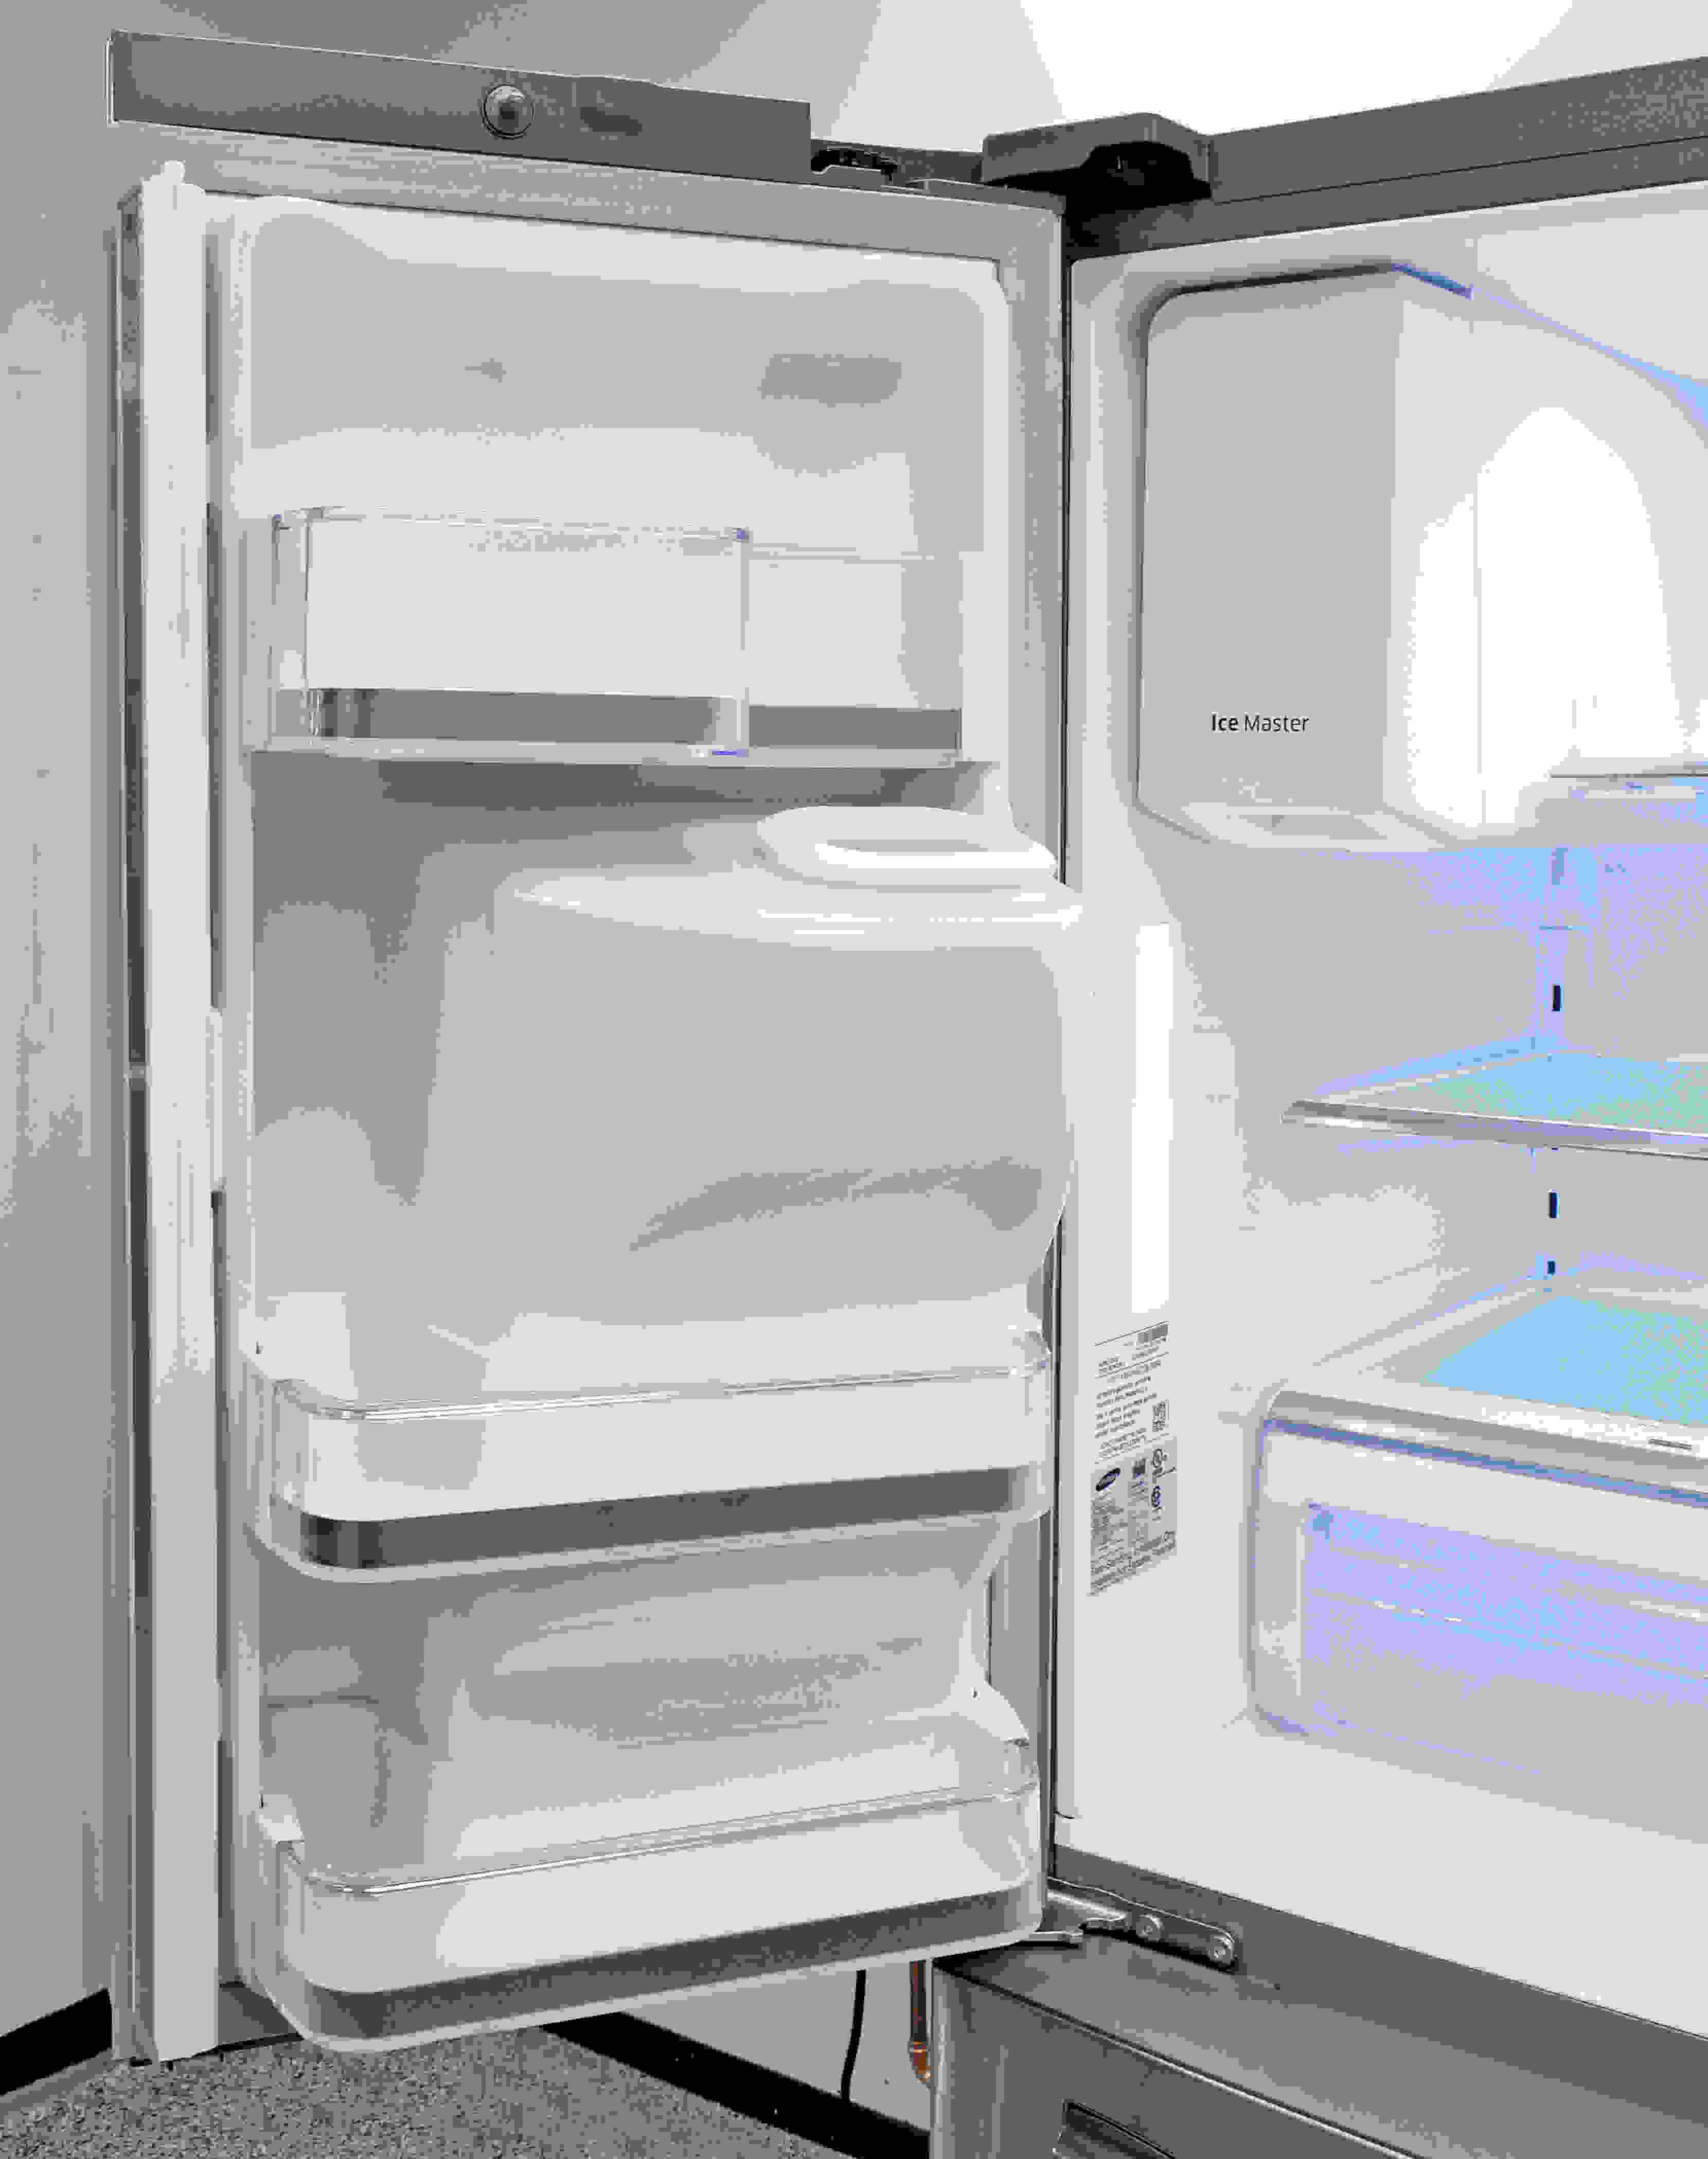 The Samsung RF28HMEDBSR's left fridge door doesn't have a lot of space, since it needs to accommodate the bulky ice chute.